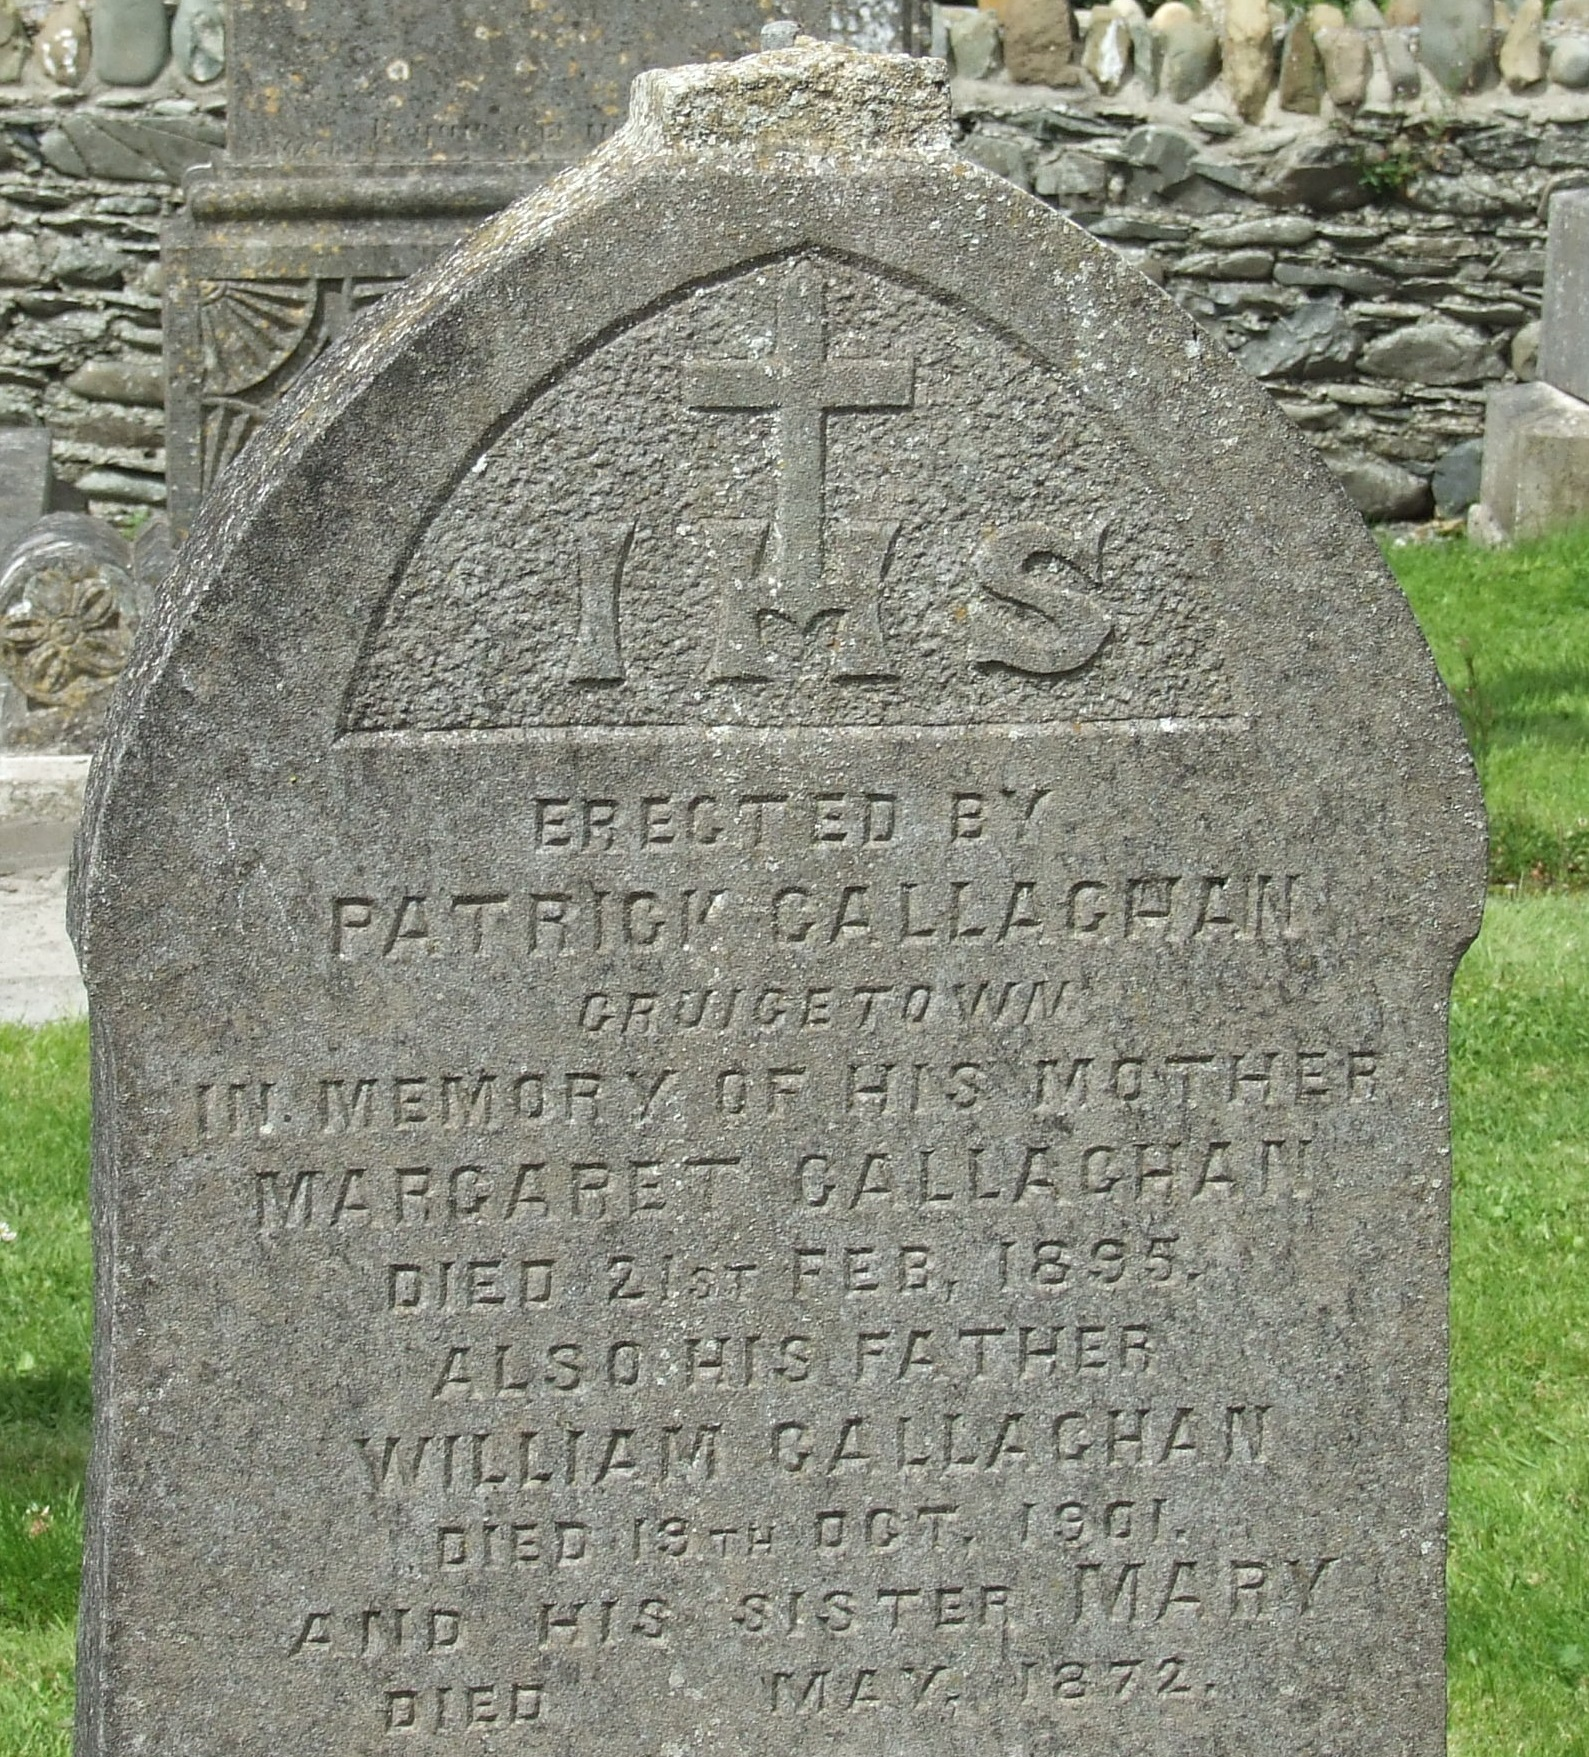 A headstone with the erector prominently mentioned (Port, Co. Louth)